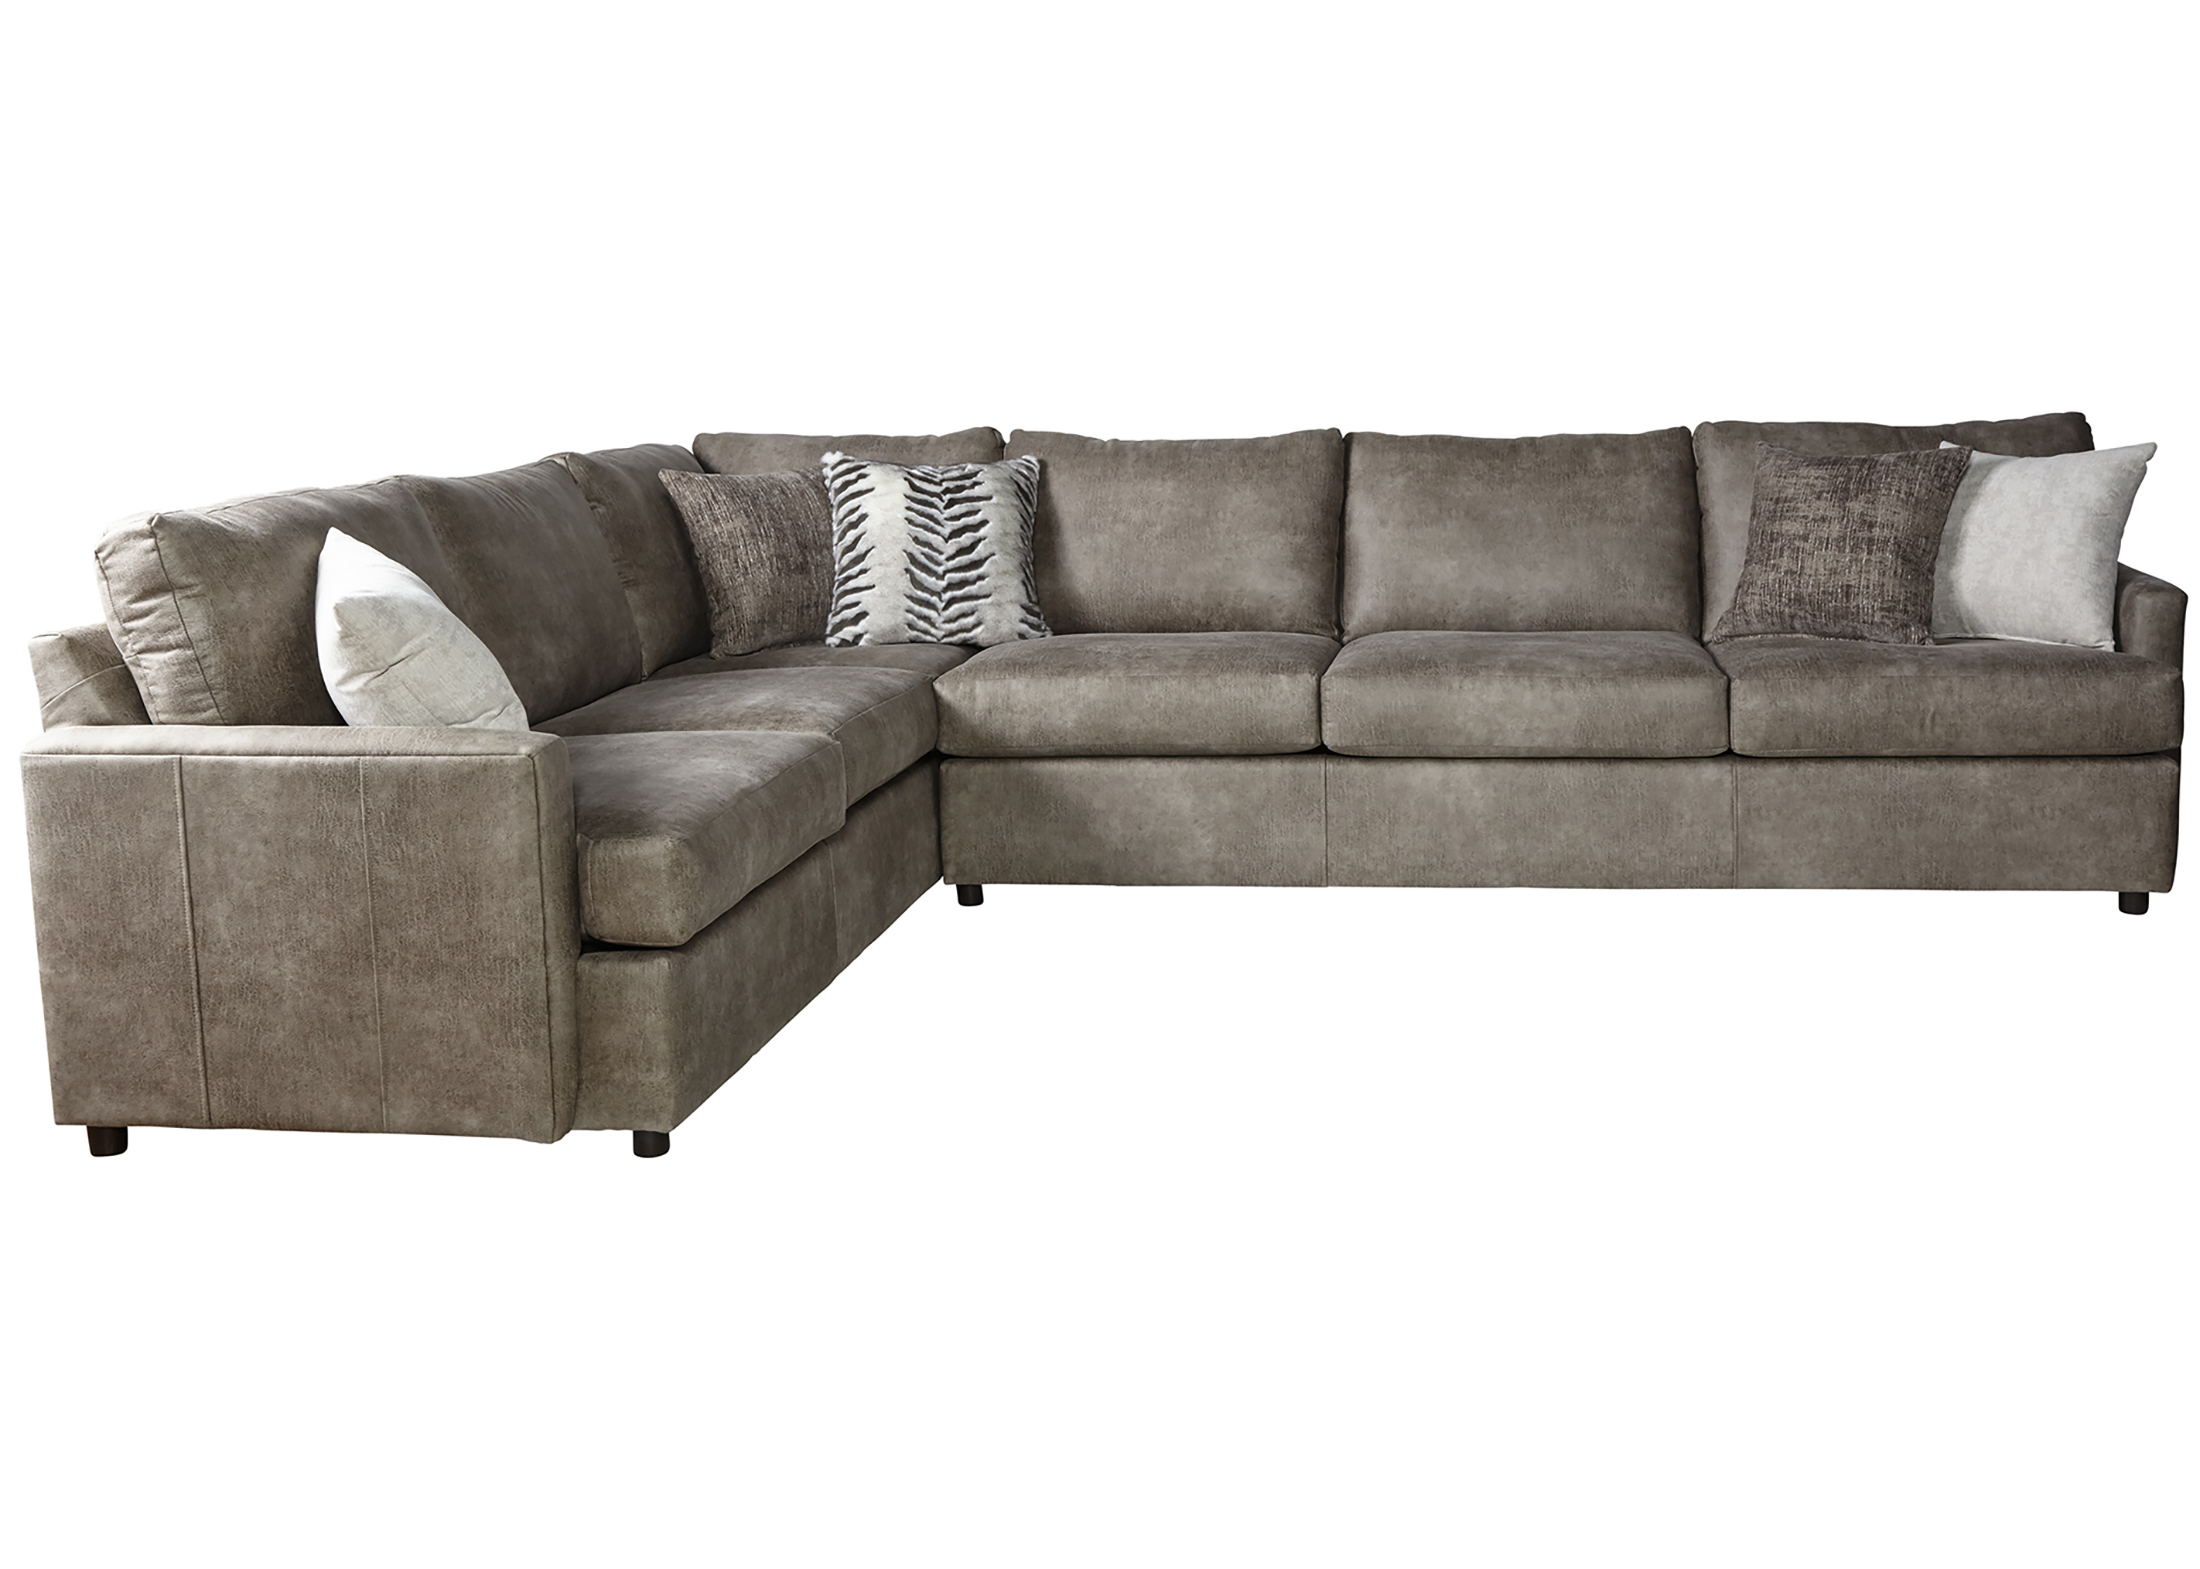 10800 R/F SECTIONAL